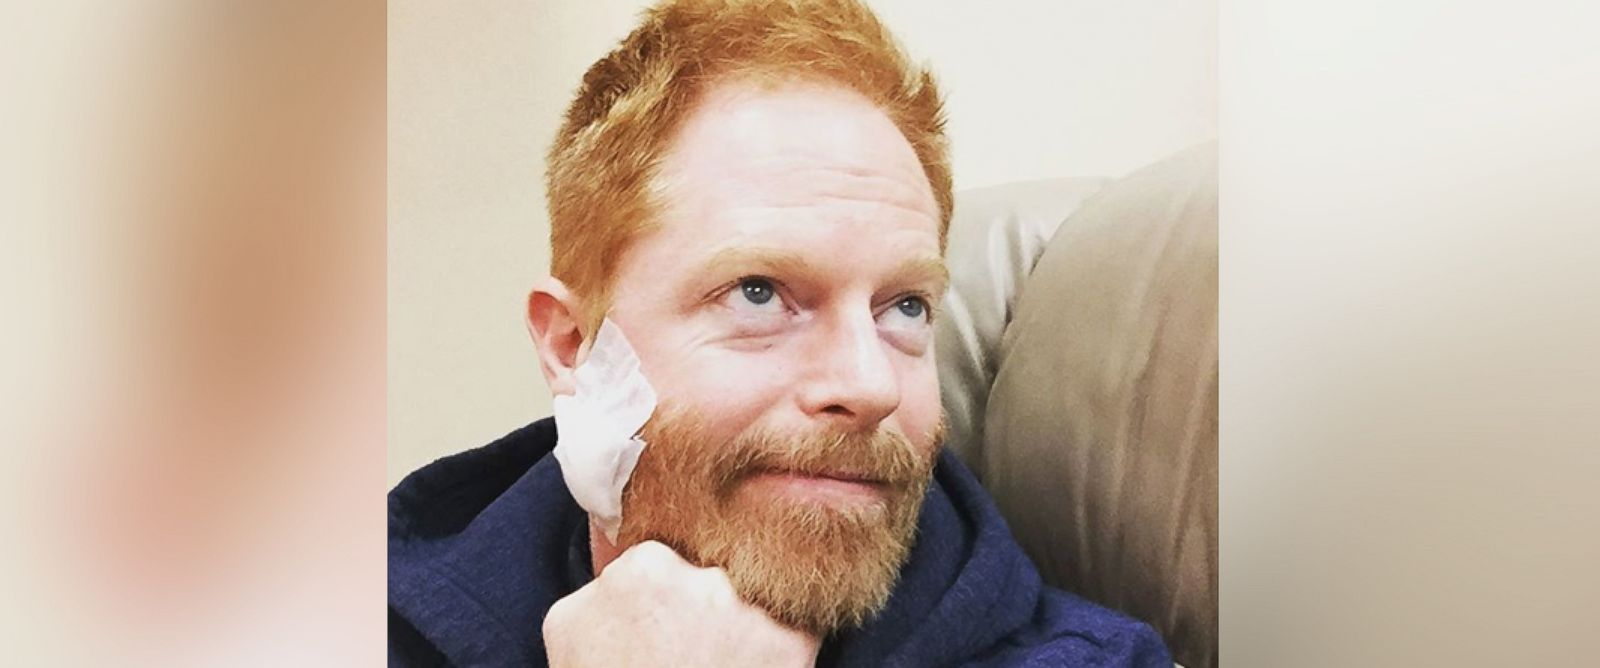 """PHOTO: Jesse Tyler Ferguson posted this image with the caption, """"Thank you to Dr. Bennett & his entire team for taking the cancer out of my face. Good luck hiding the stitches tomorrow @modernfamily_makeuphair!,"""" Dec. 8, 2015."""